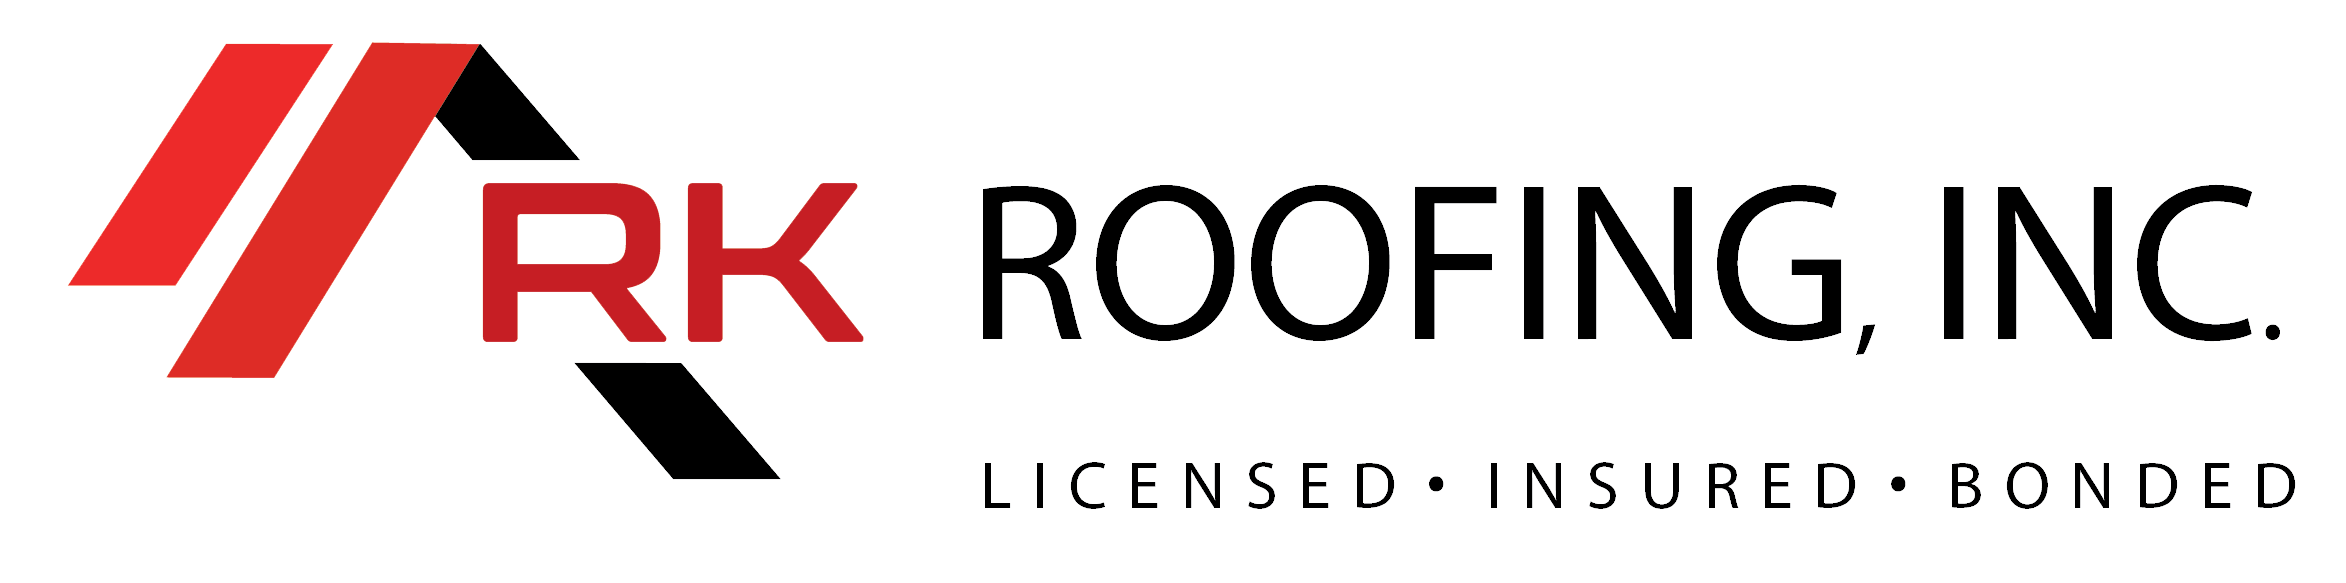 RK Roofing Contractors Chicago – Local Roofing Company